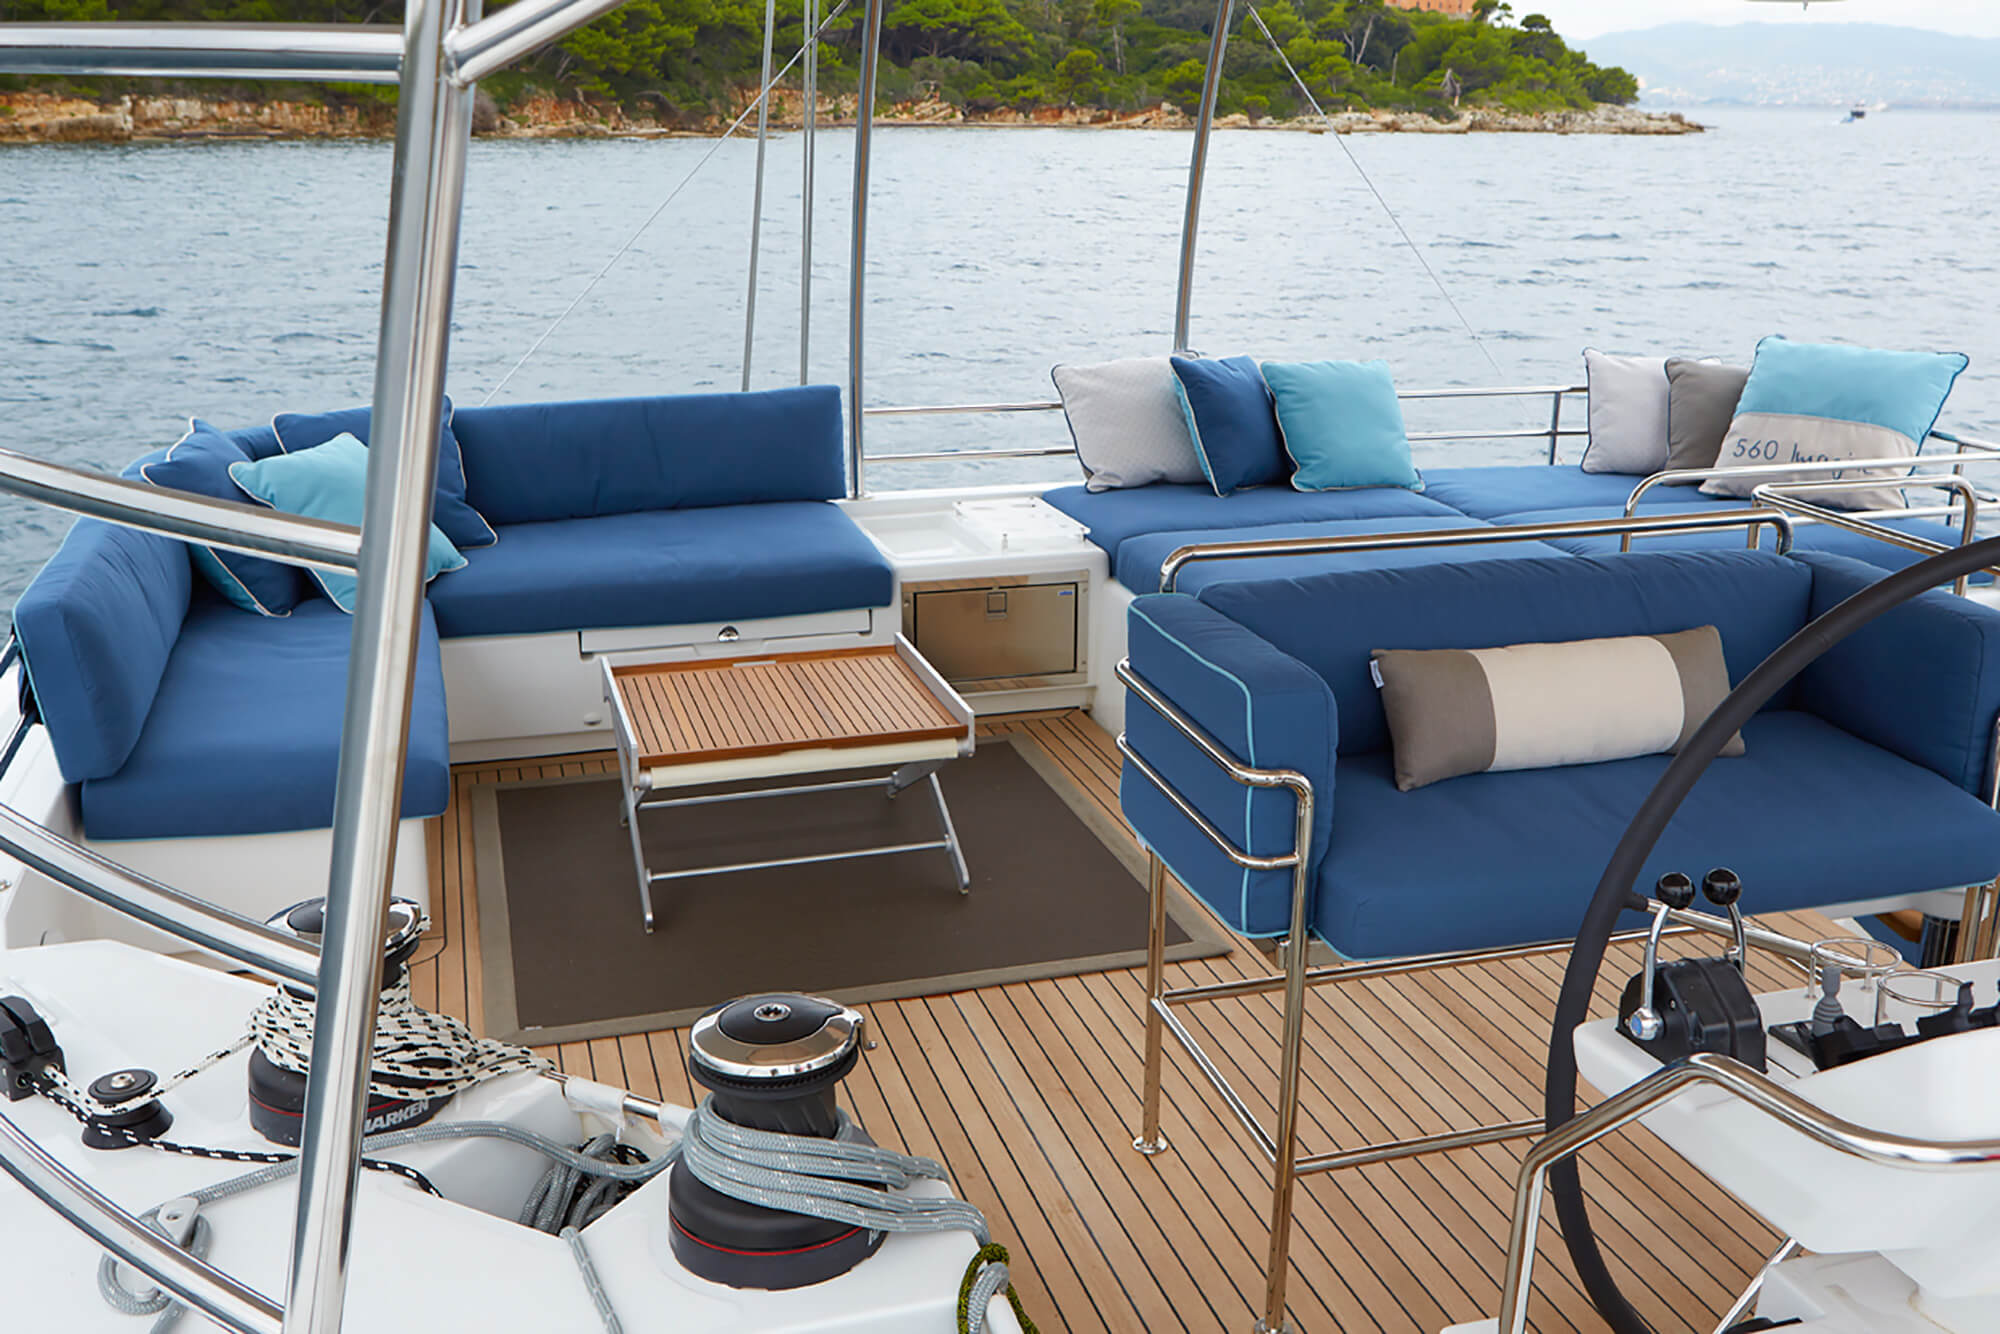 Boat seat cushions on the deck covered in blue Sunbrella upholstery fabrics